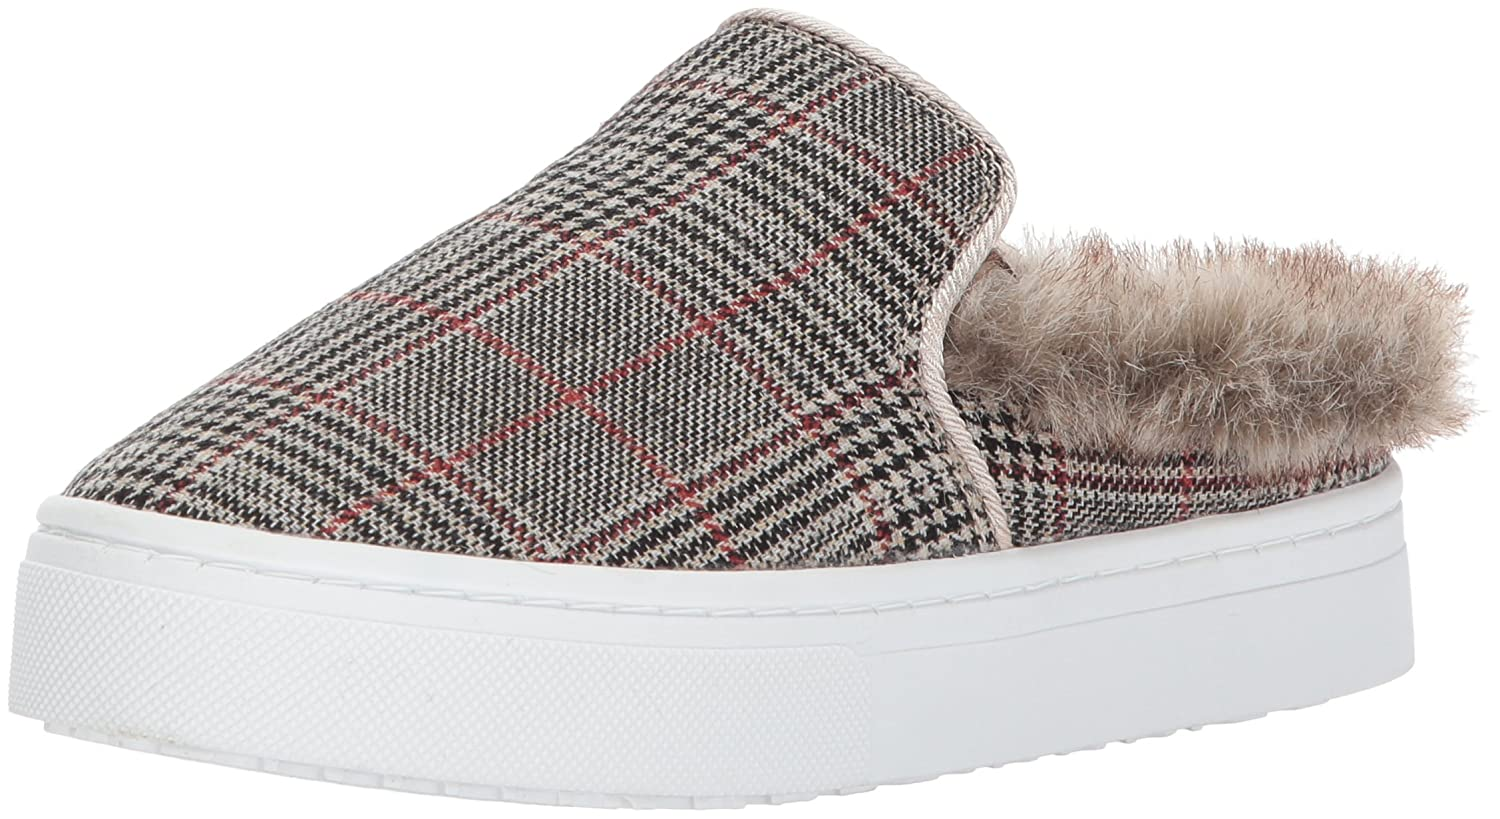 Sam Edelman Women's Levonne Sneaker B06XC286PQ 7.5 B(M) US|Tan Multi/Putty Plaid Print